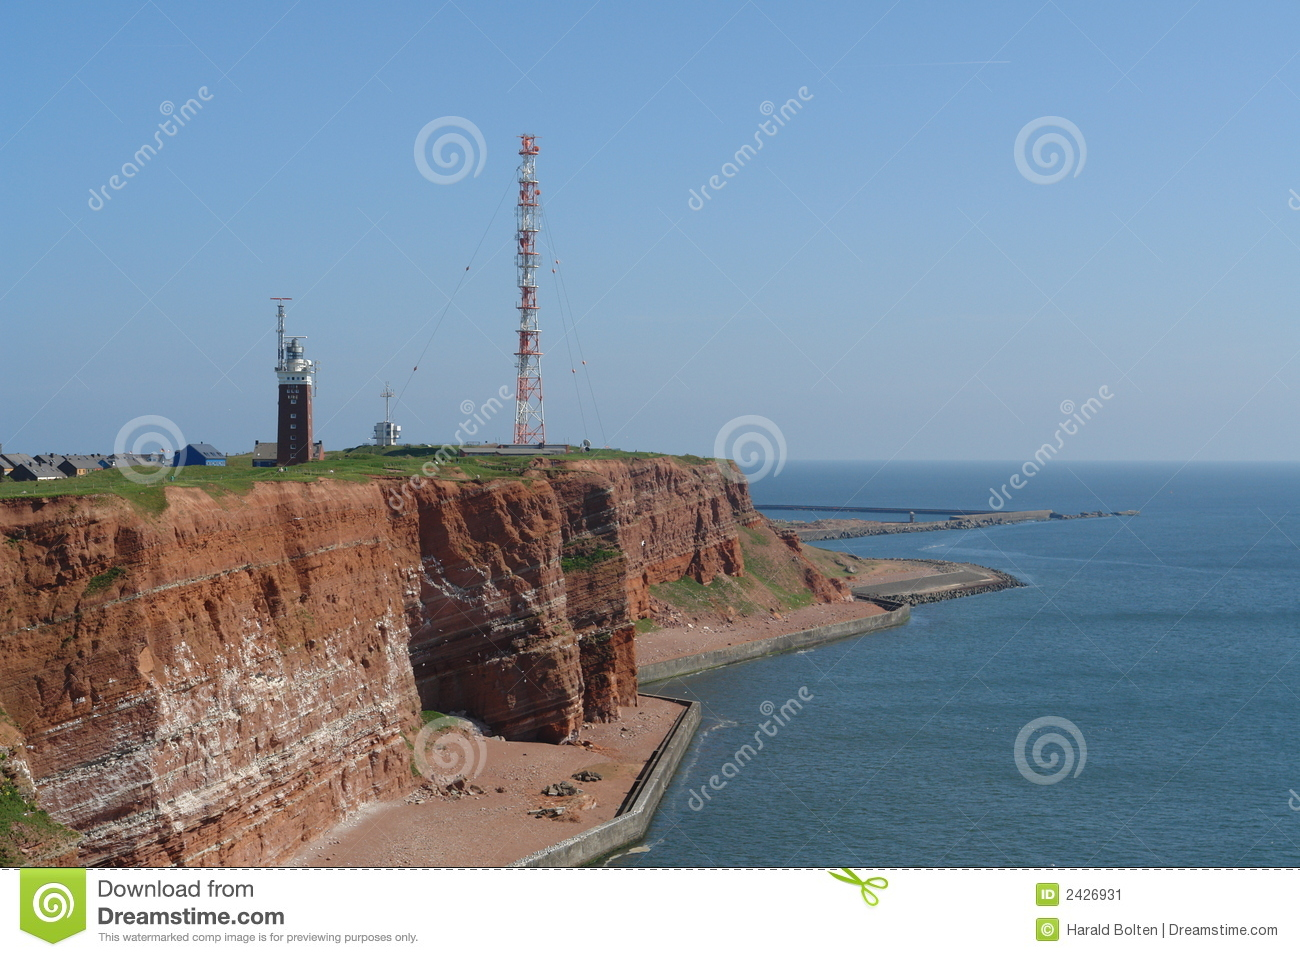 Red sandstone cliffs at Heligoland island in the North Sea.